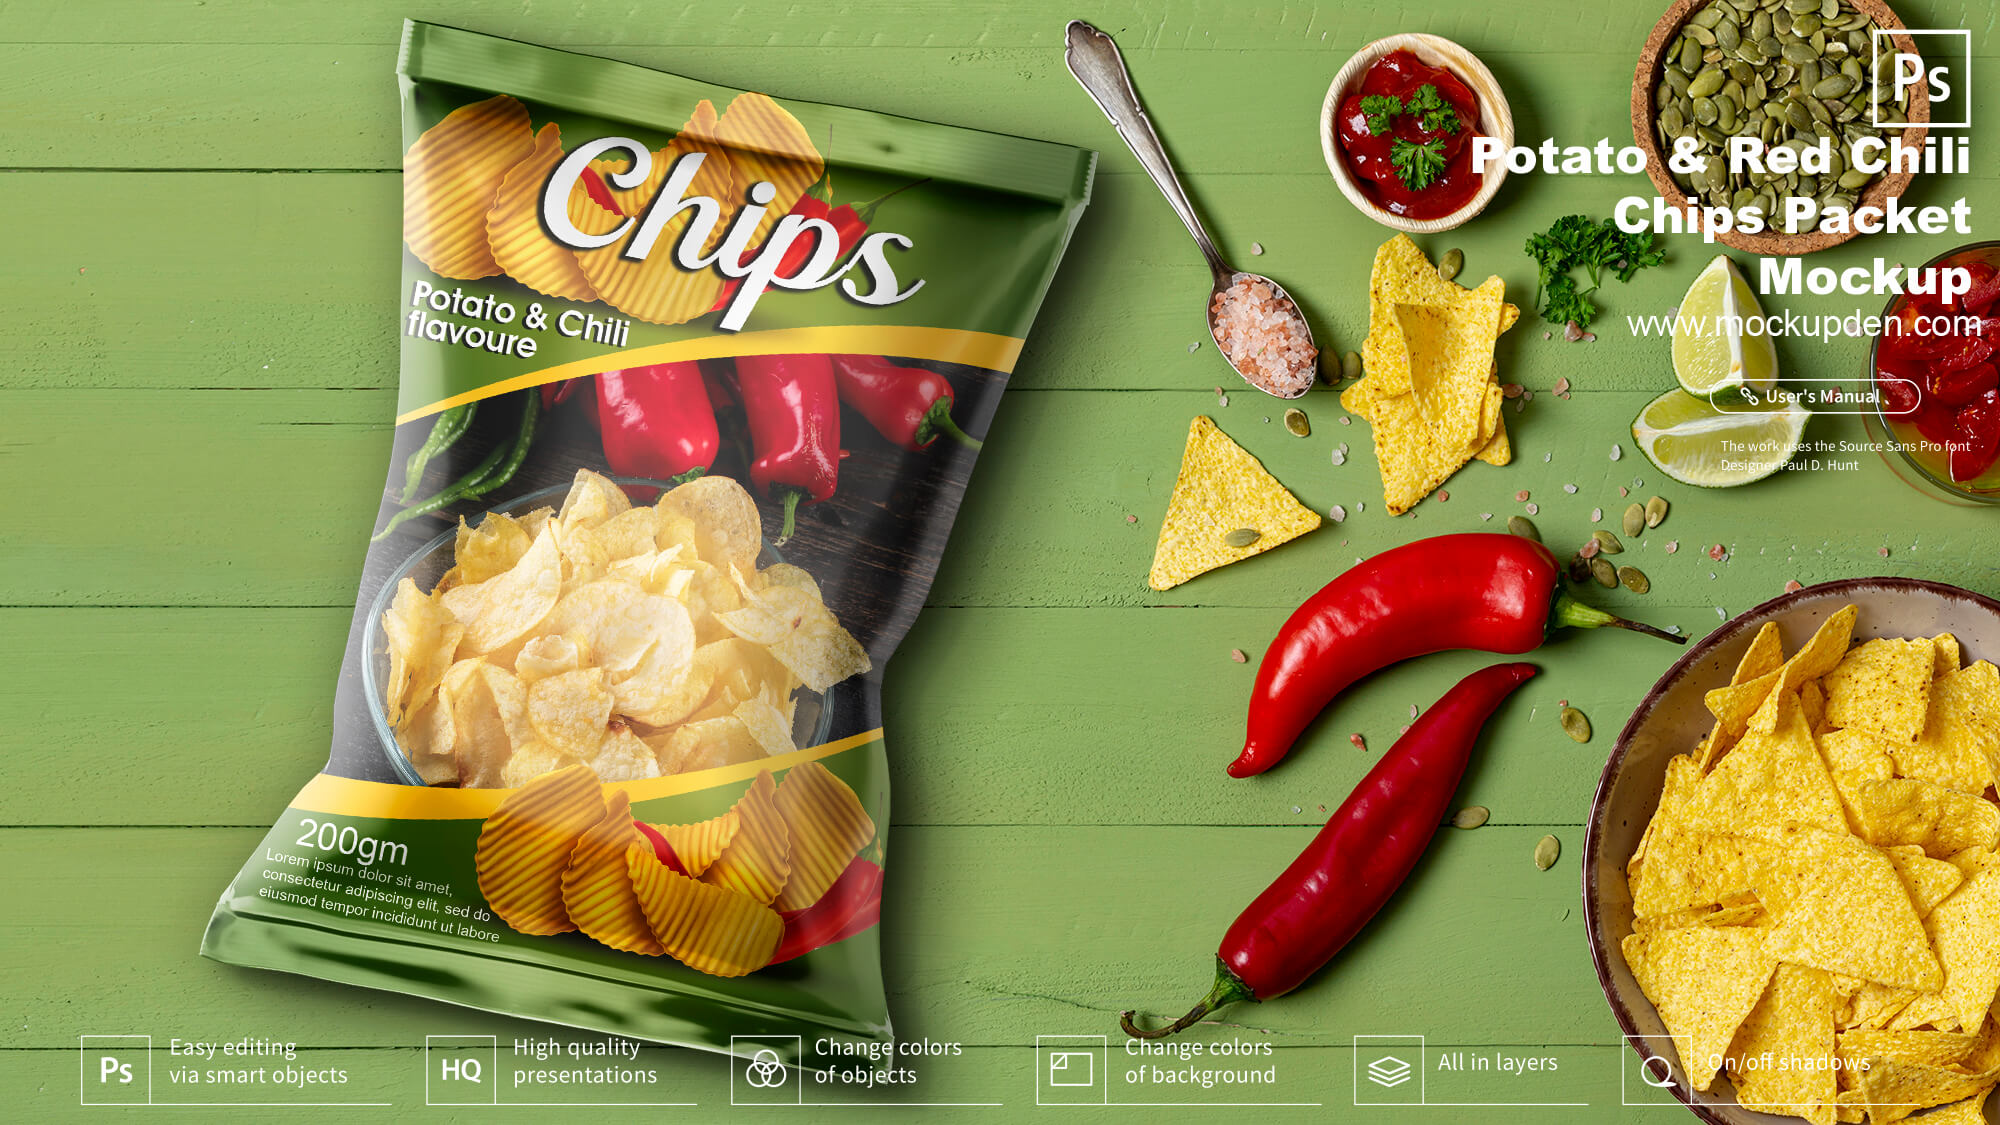 Free Chili Potato Chips Packet Mockup